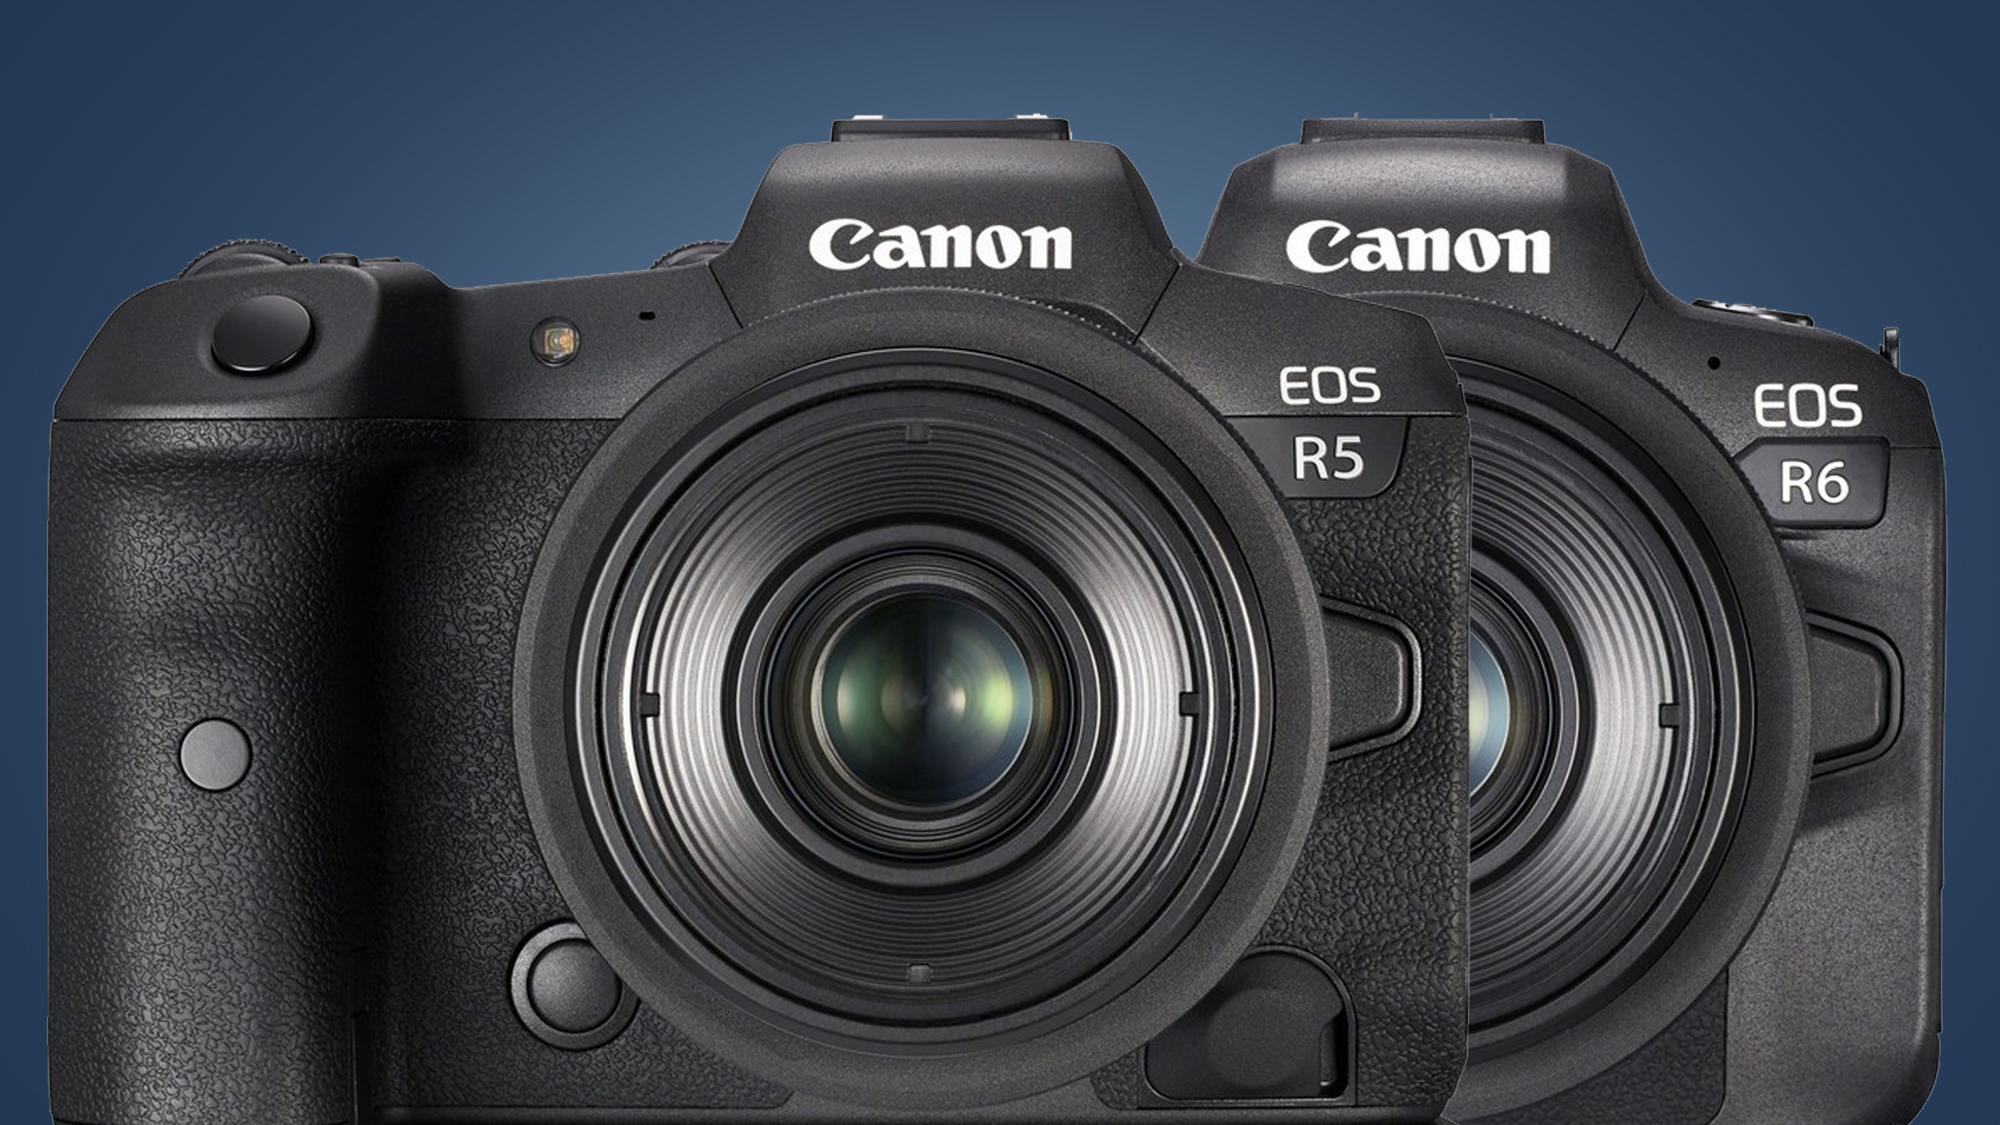 Canon EOS R5 and EOS R6 get treated to big video upgrades | TechRadar